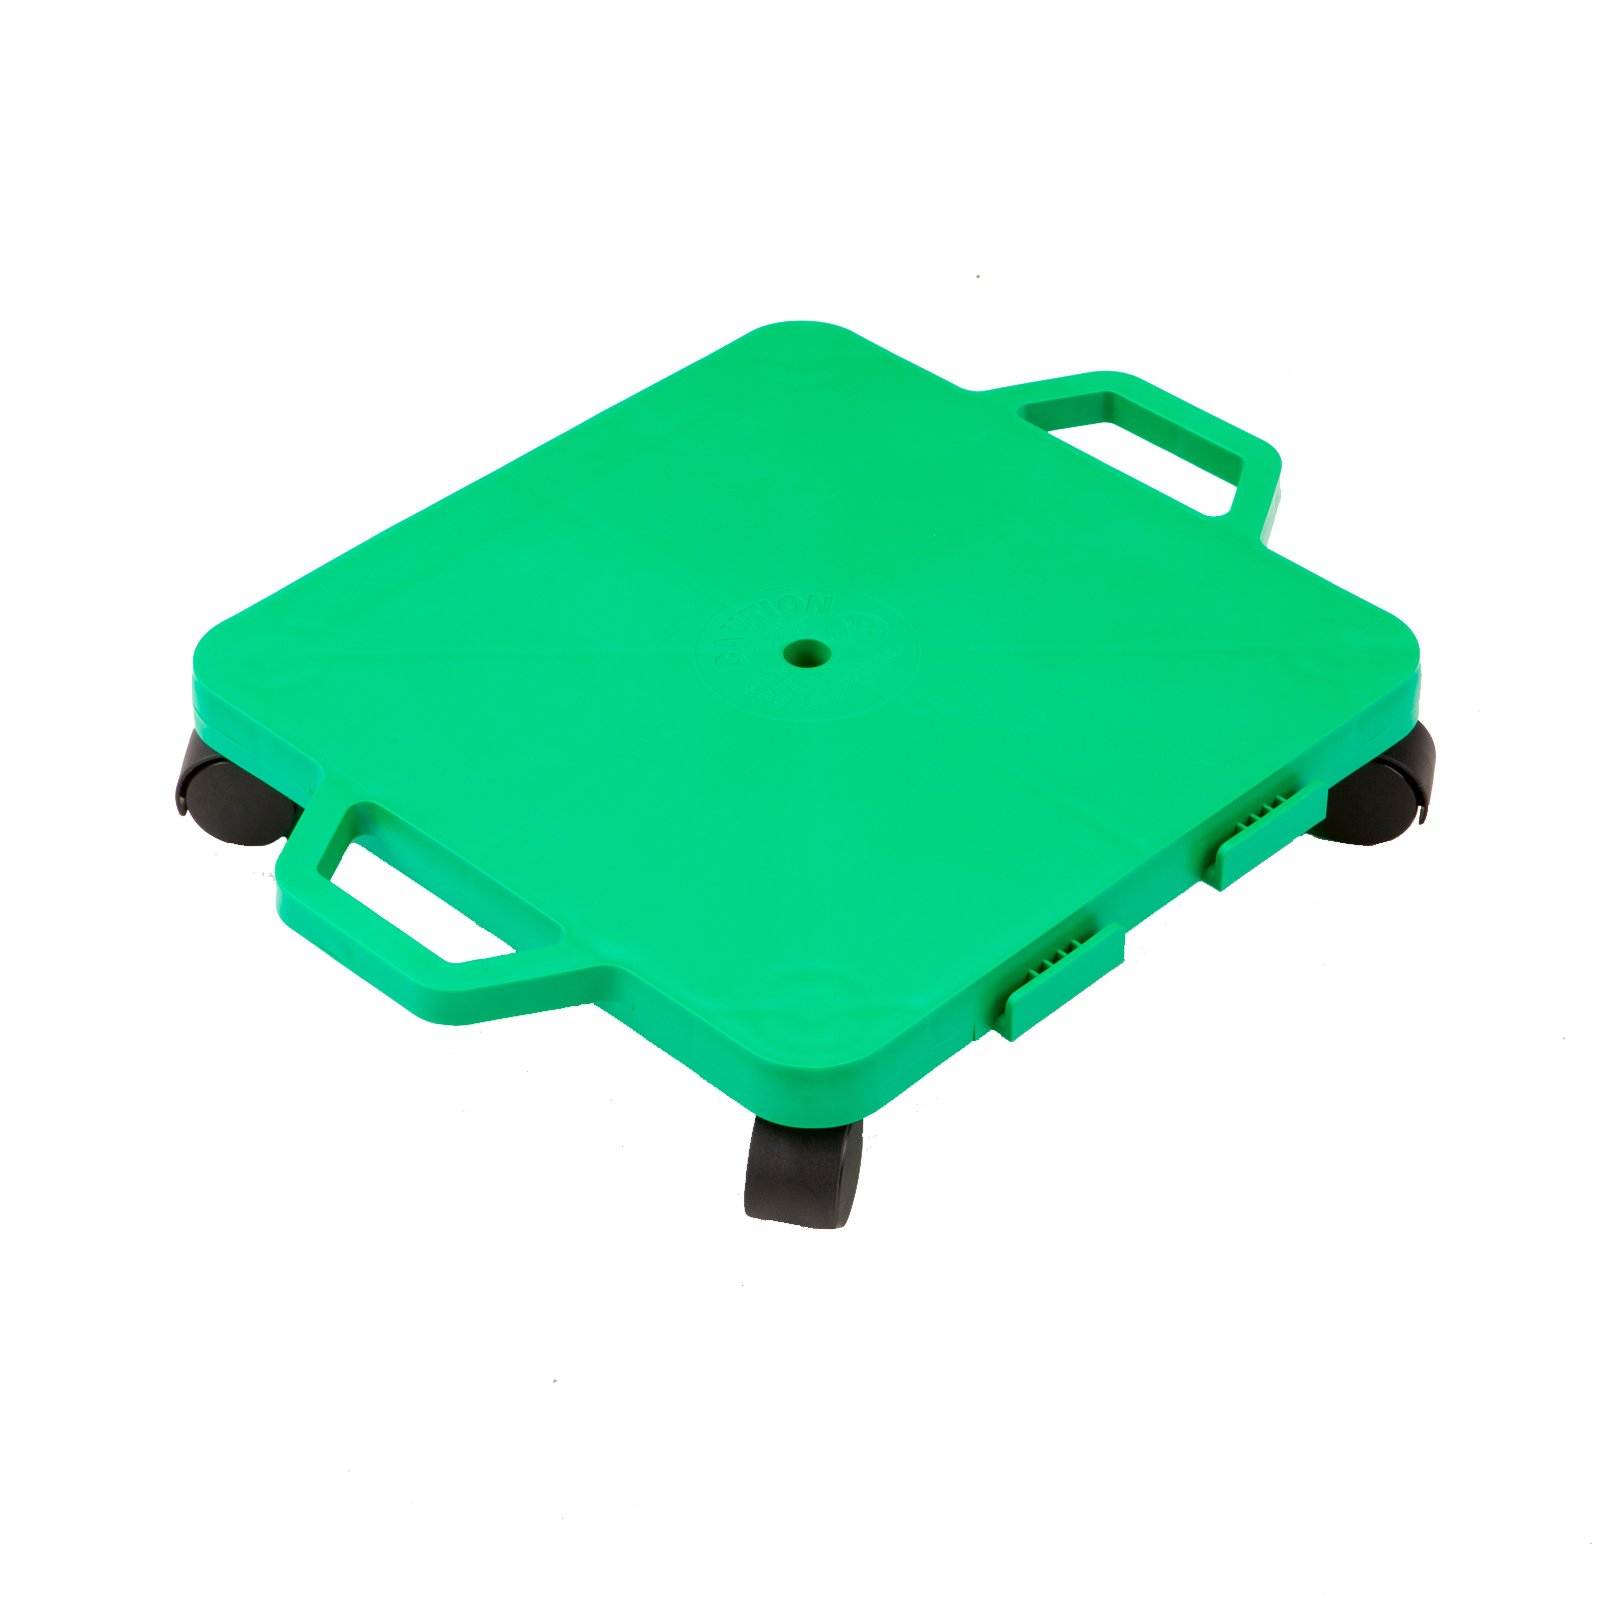 Cosom Scooter Board, 16 Inch Children's Sit & Scoot Board With 2 Inch Non-Marring Nylon Casters & Safety Guards for Physical Education Class, Sliding Boards with Safety Handles, Green